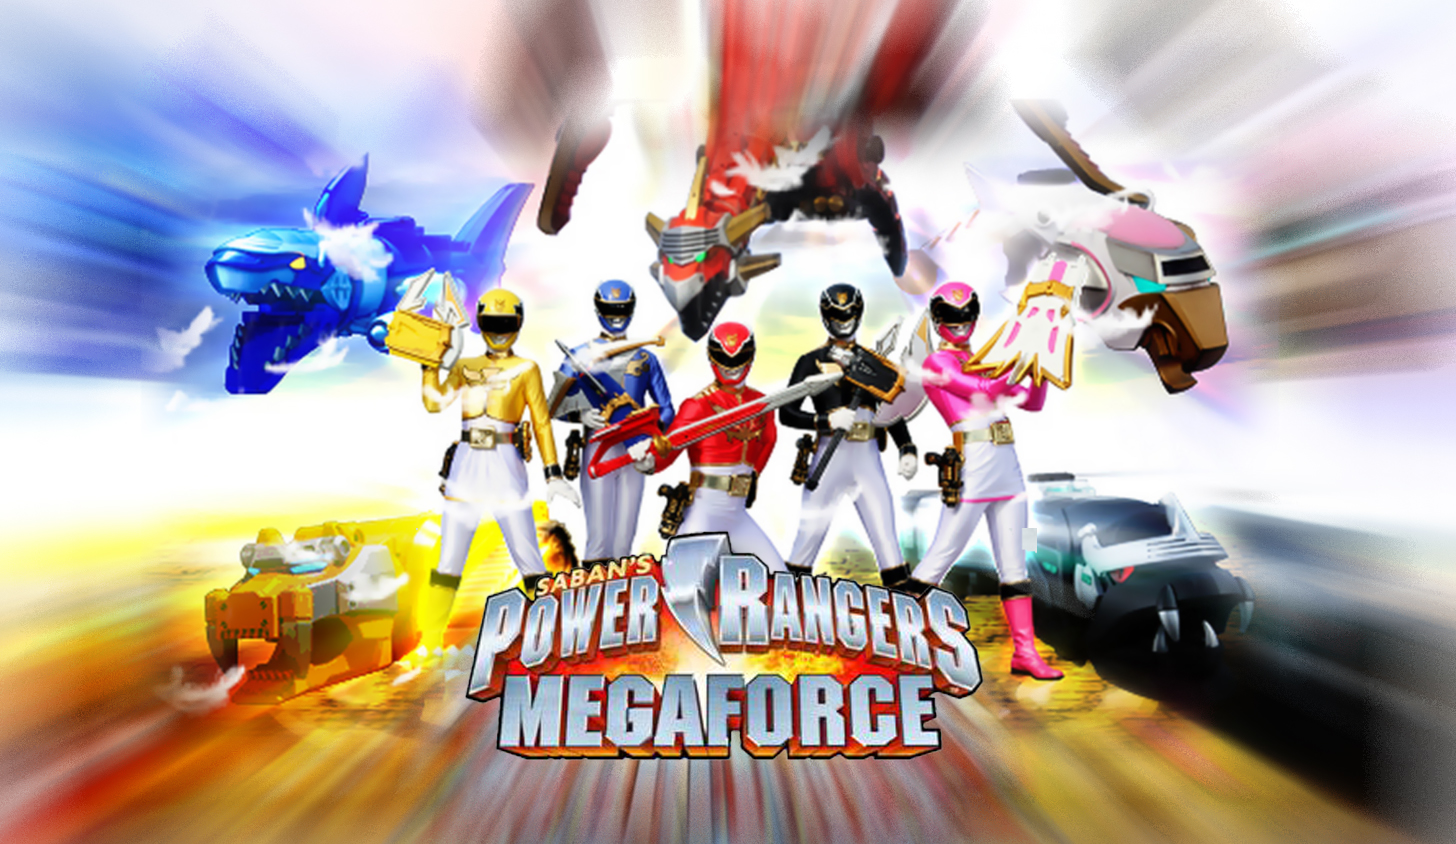 Power Rangers Megaforce 10 Серия, На Русском